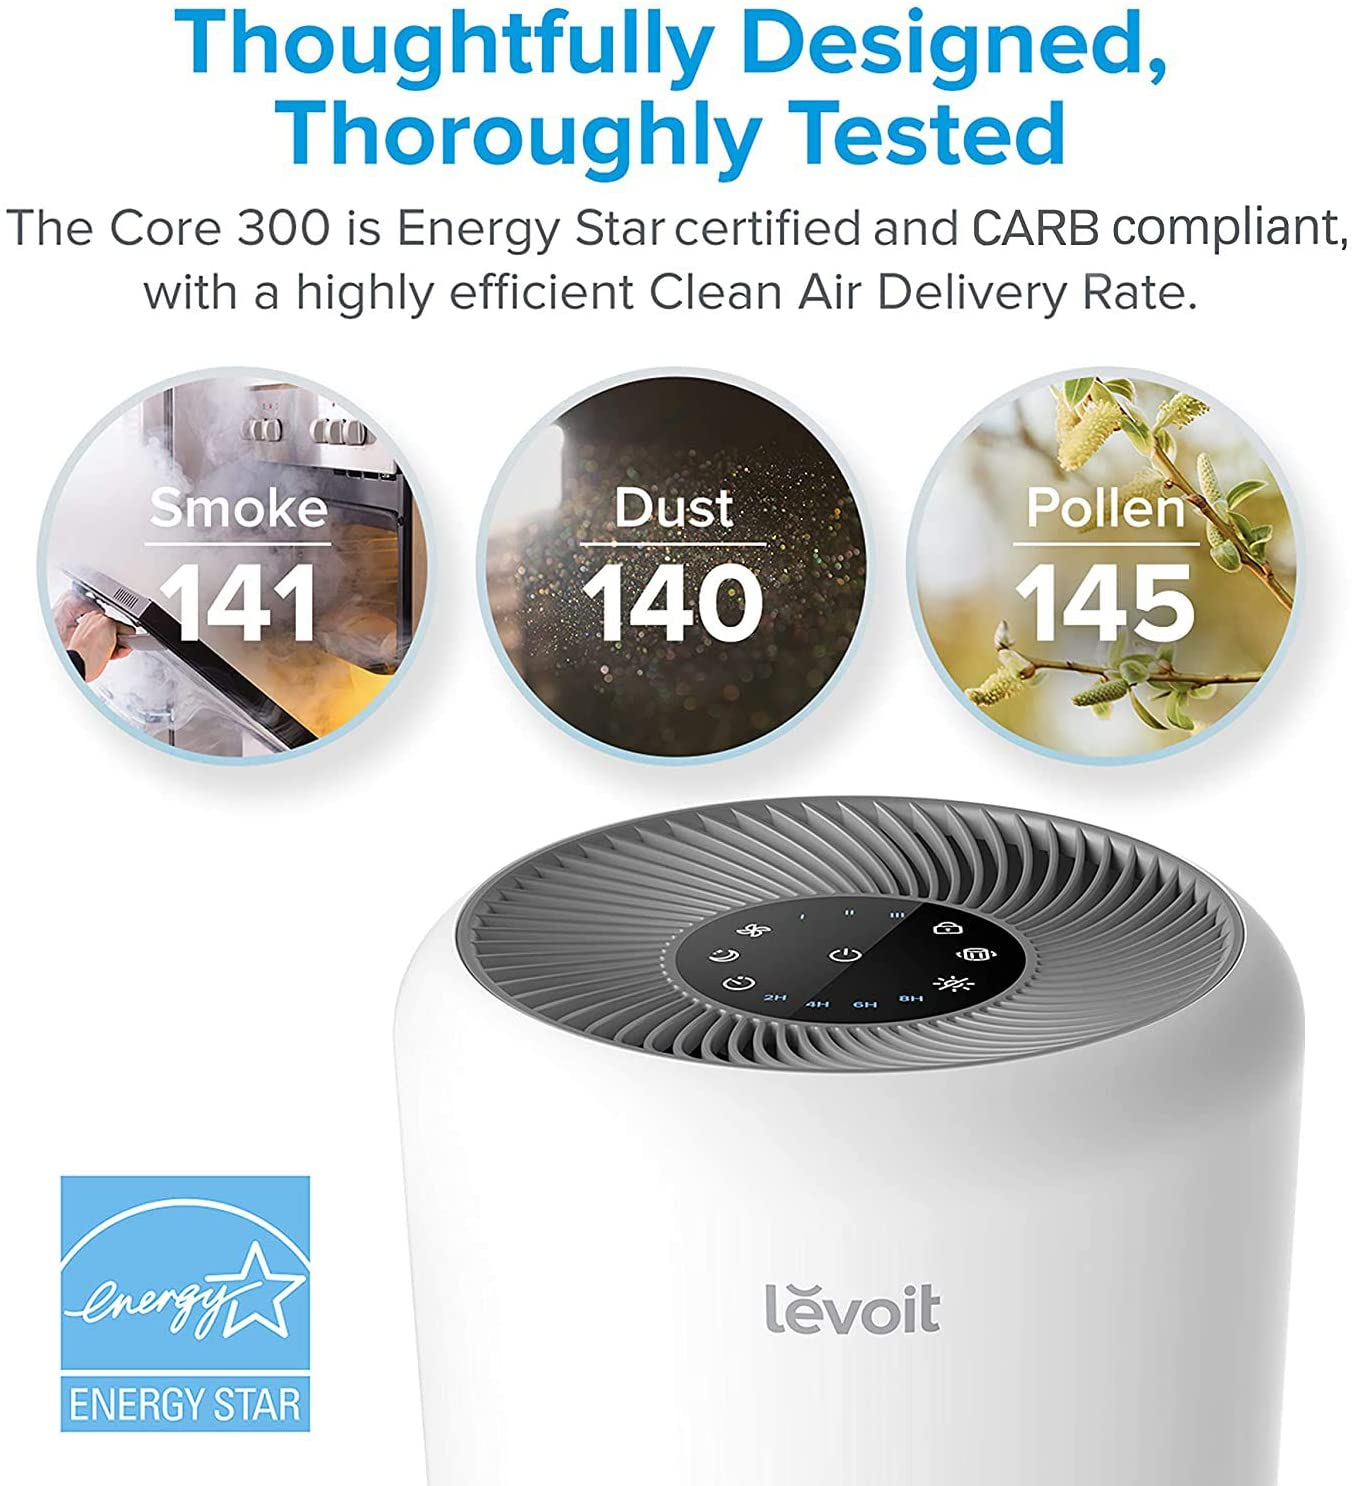 Best Air Purifier for Allergies and Asthma - LEVOIT Air Purifier